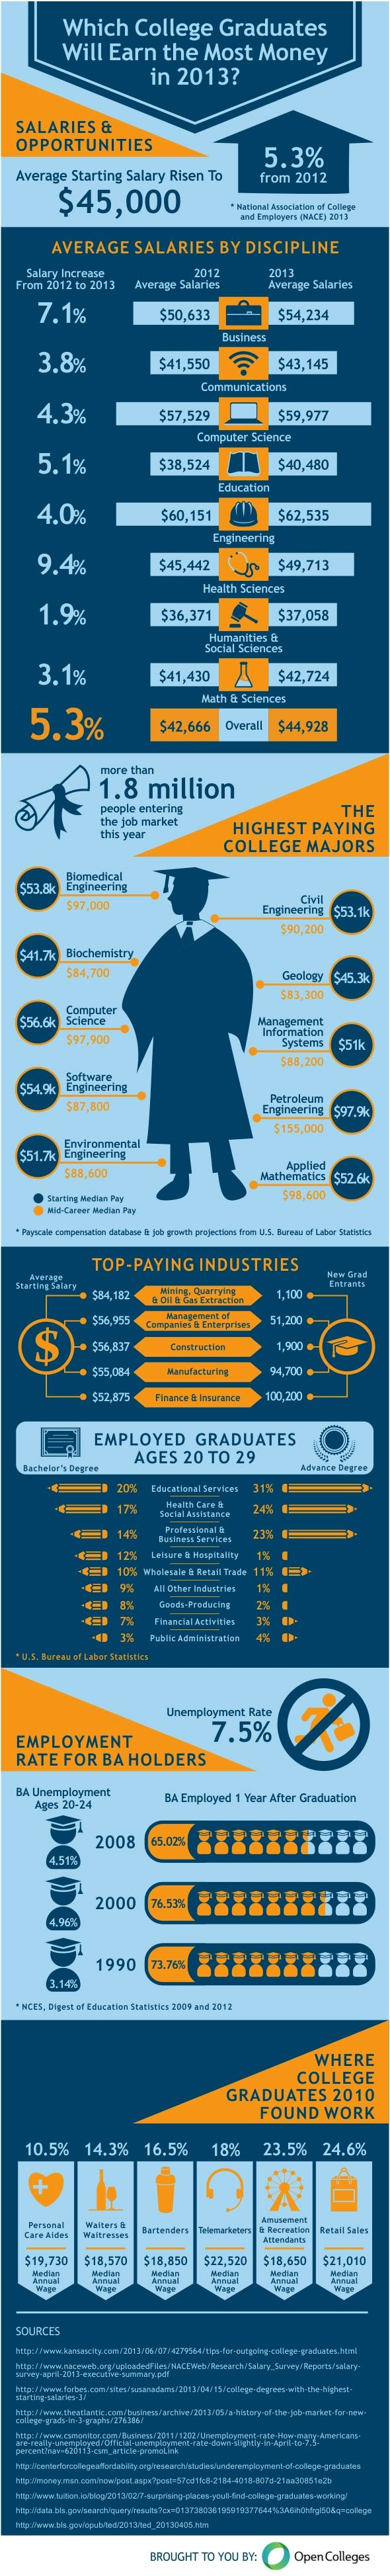 Chiropractic best majors in college to make money